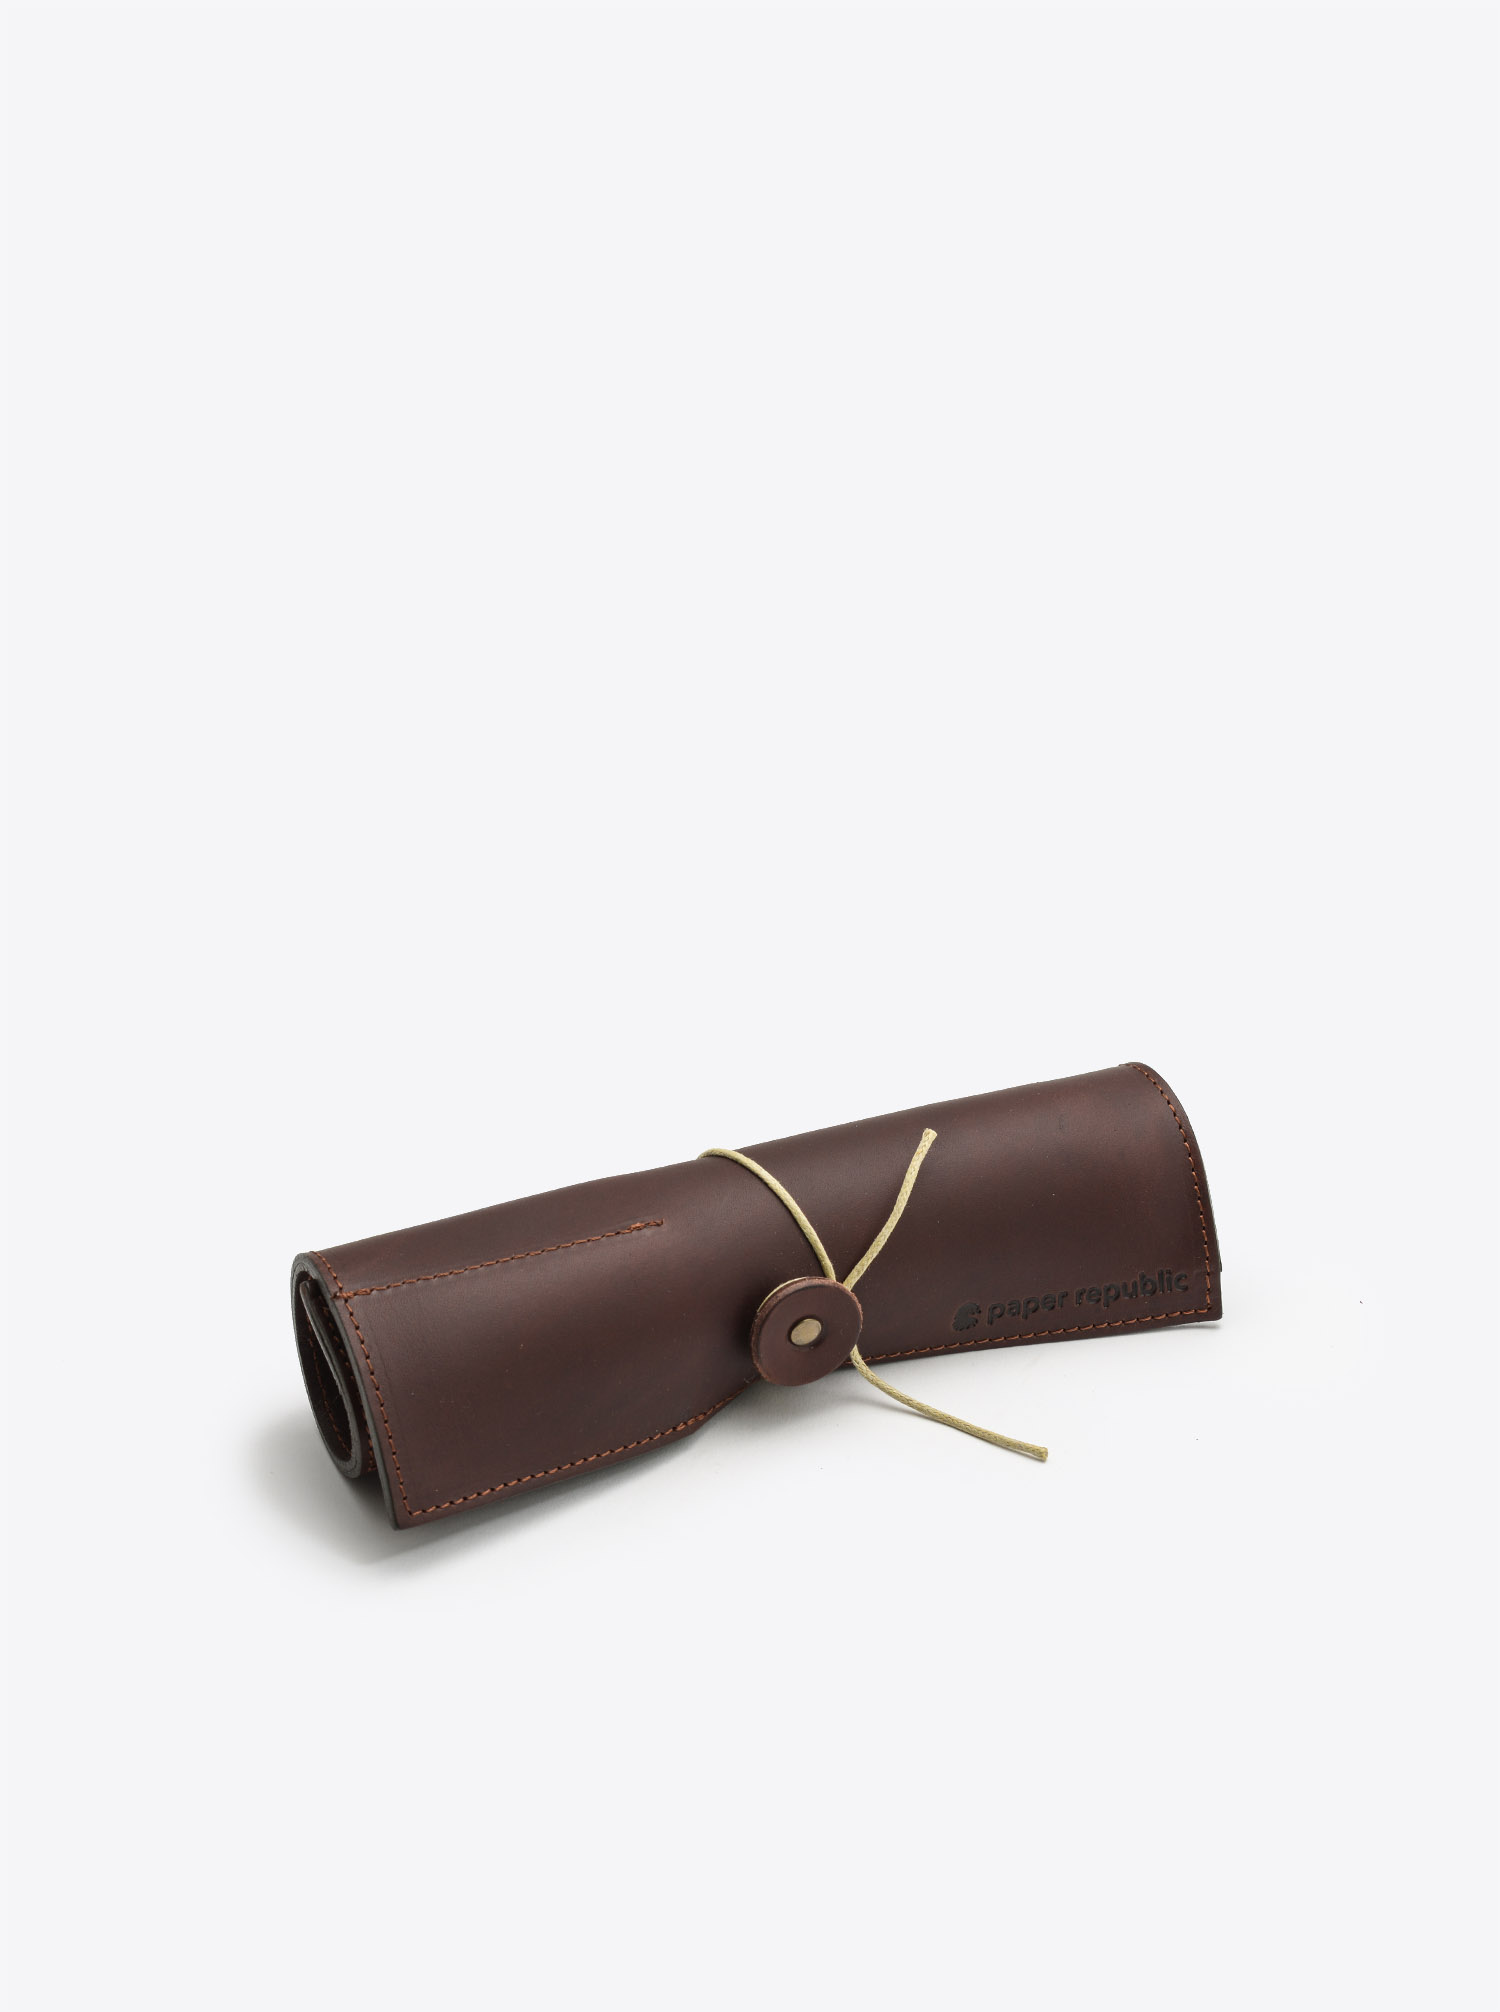 Leather Roll Le Porte Plume Chestnut